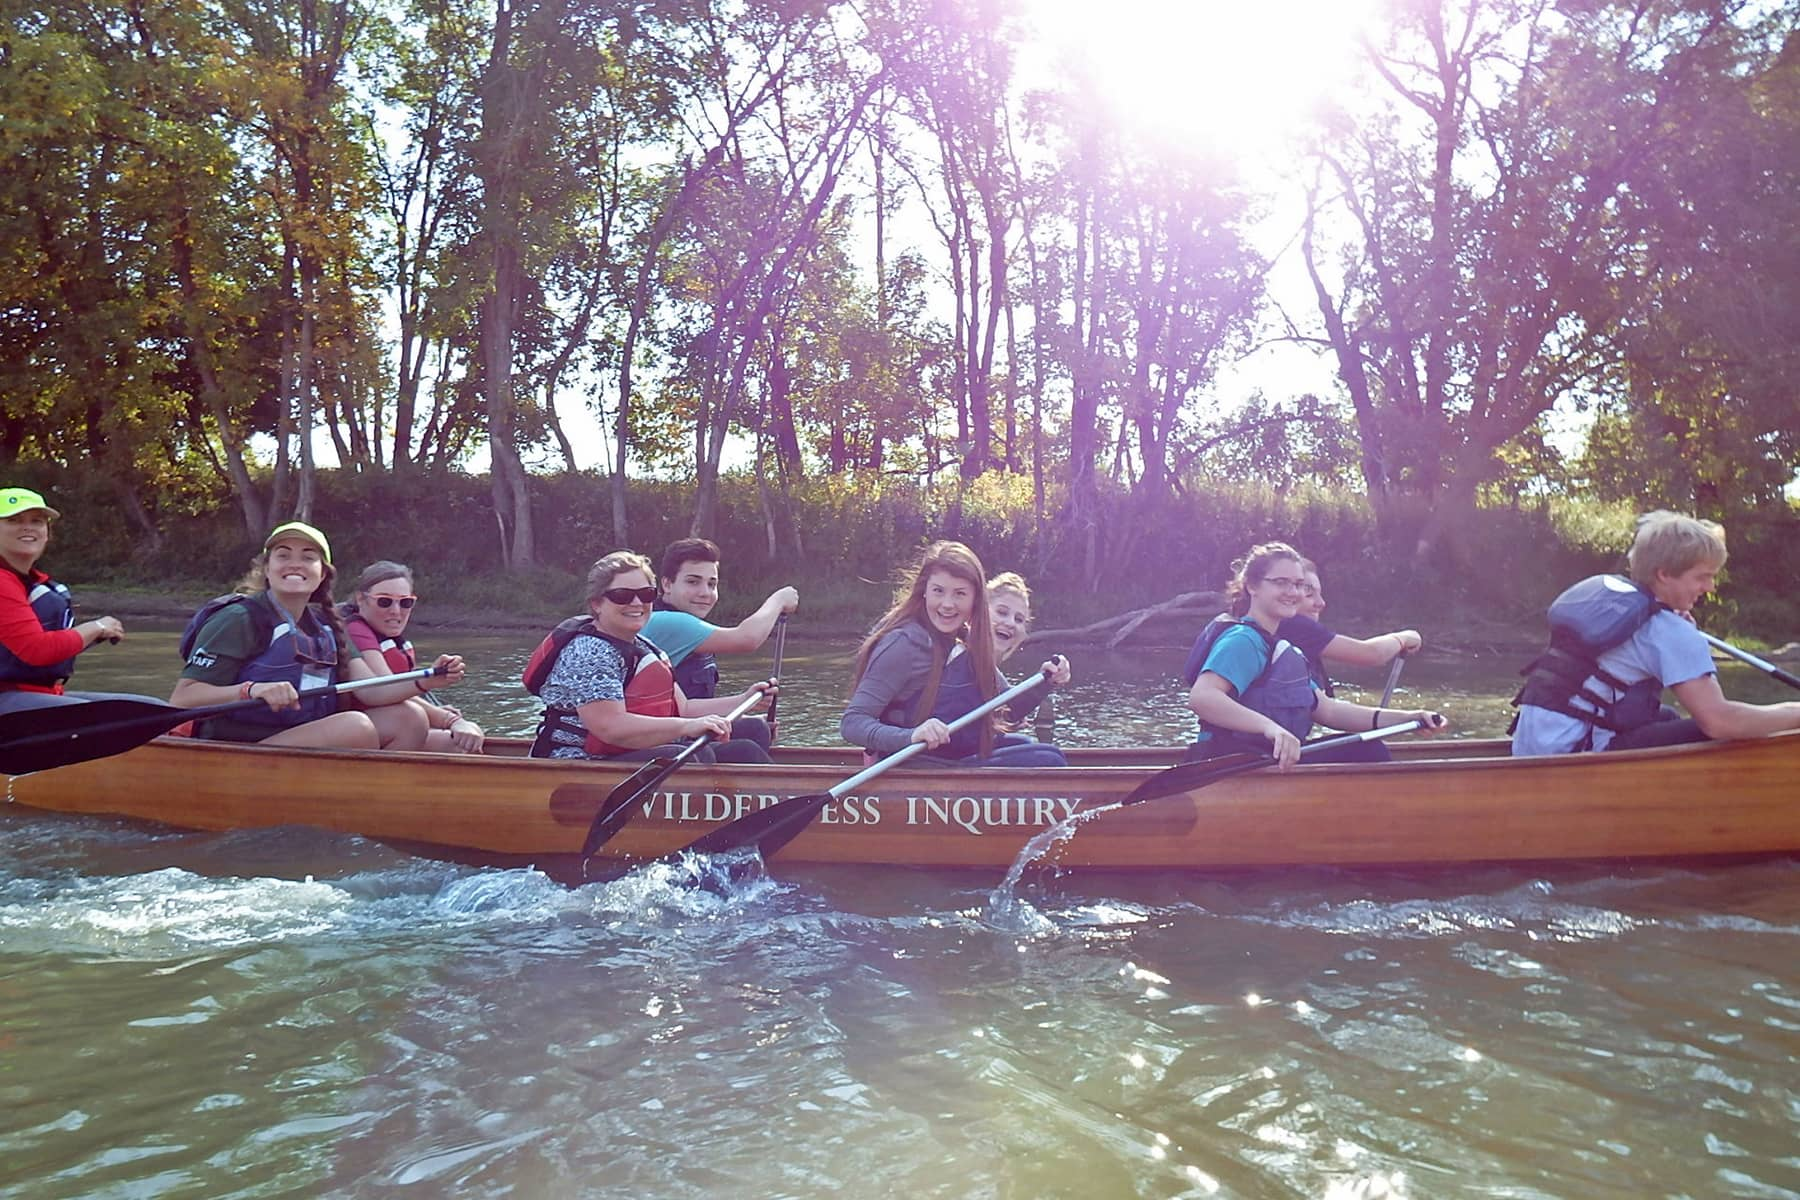 Paddlers enjoy getting out on the water in East Grand Forks